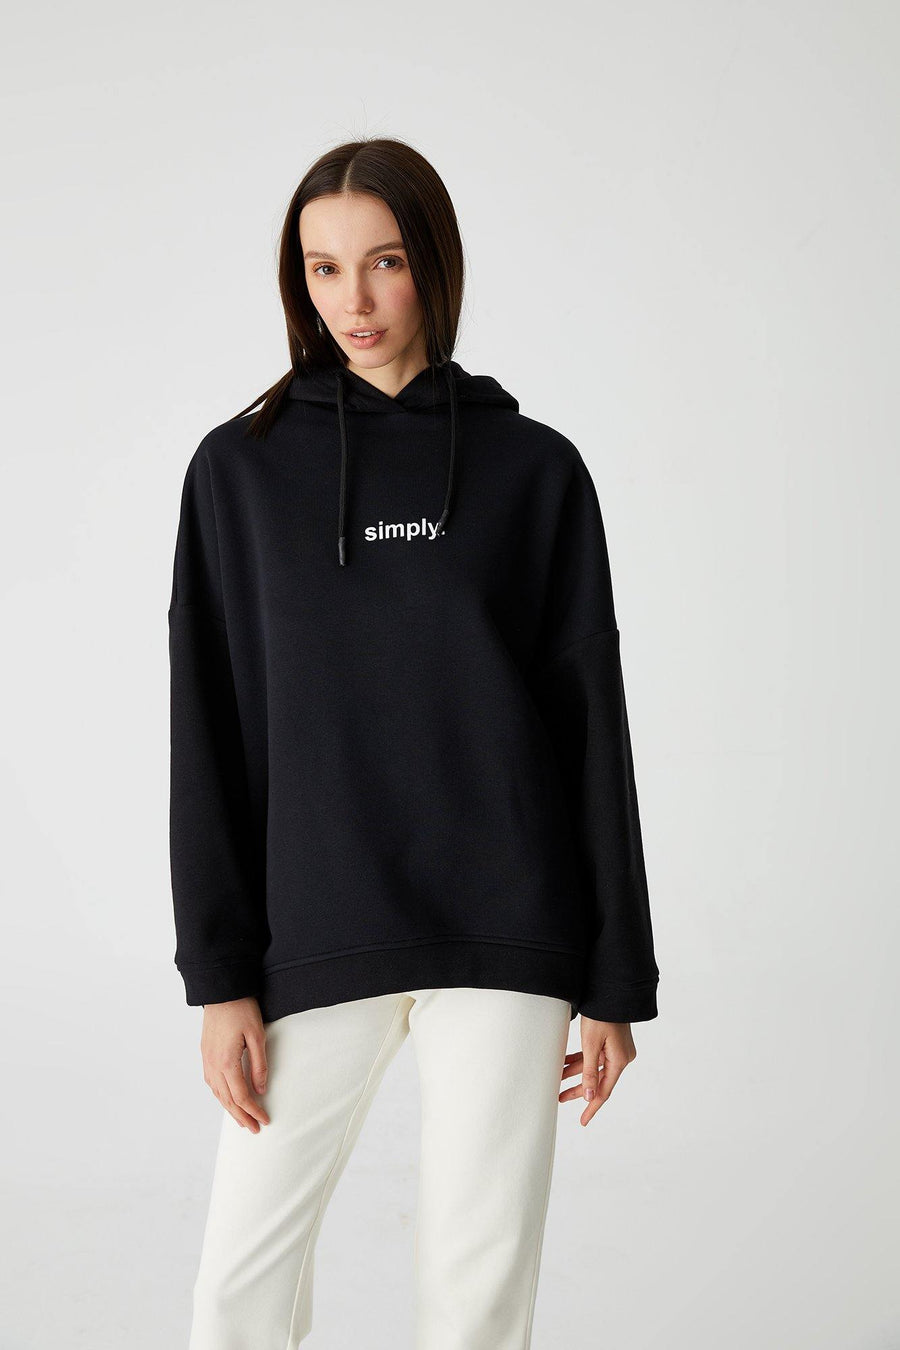 Simply Sweatshirt